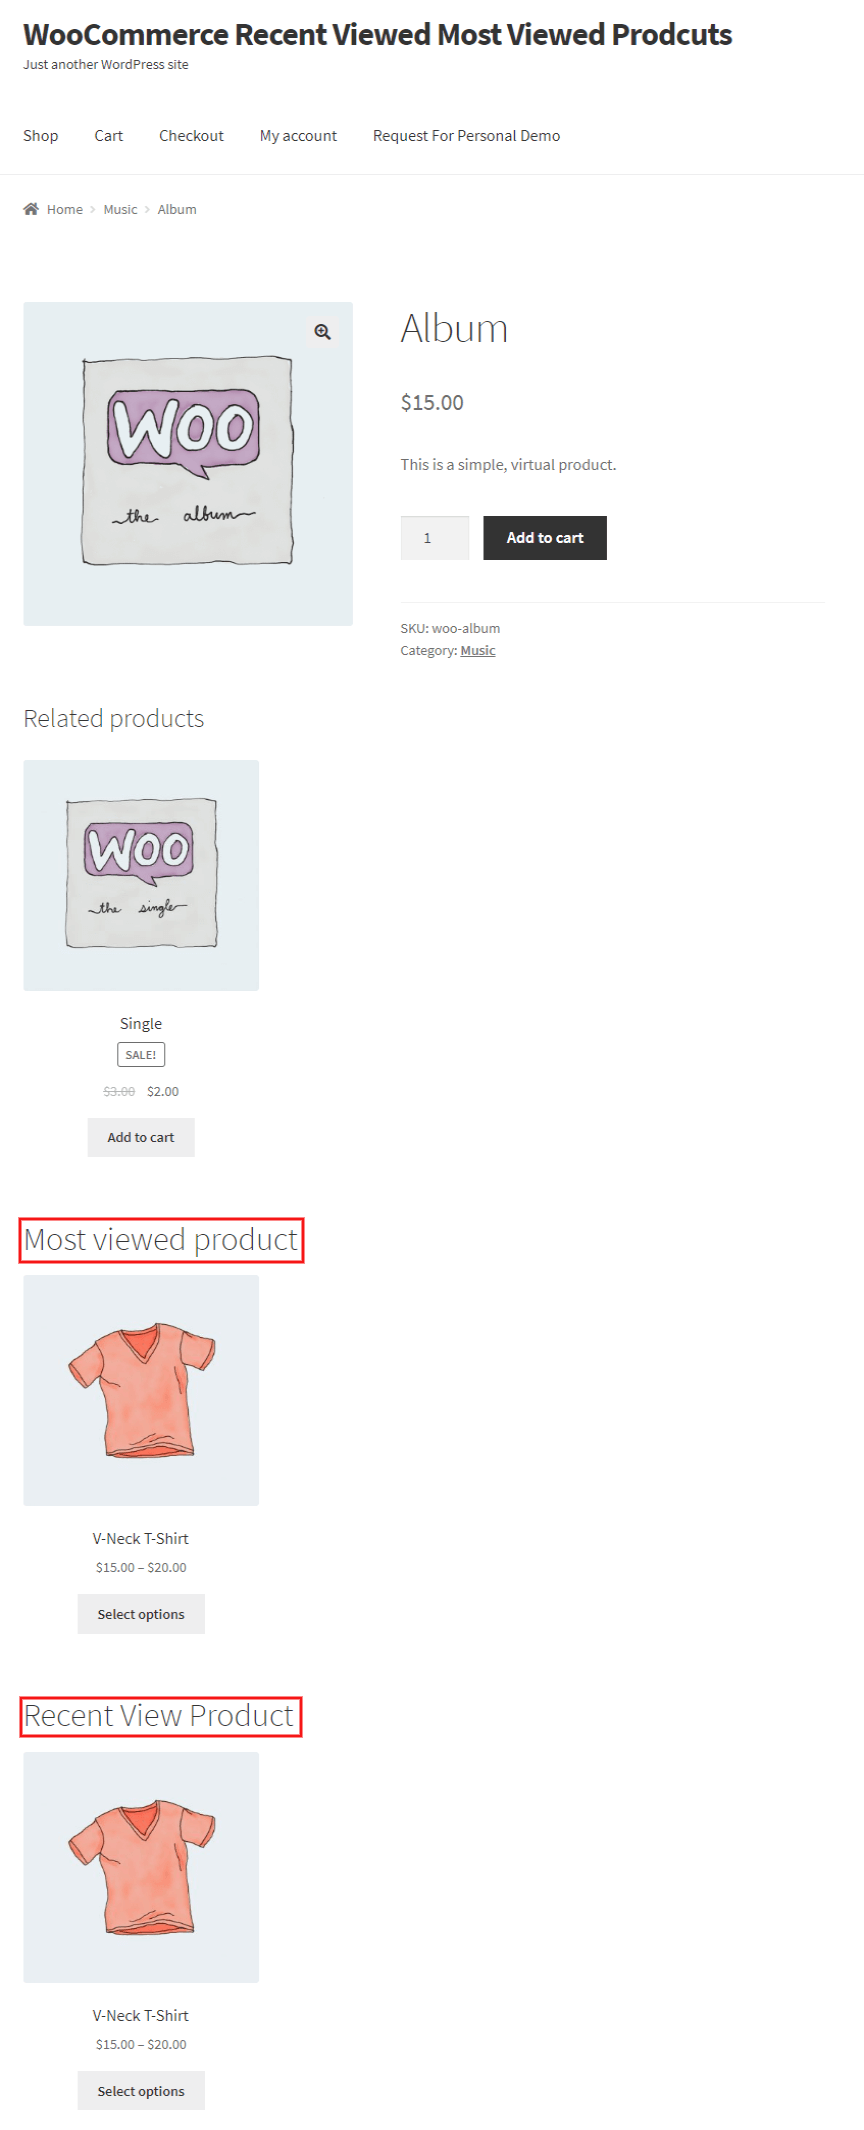 woocommerce-recently-viewed-most-viewed-products-product-detail-page